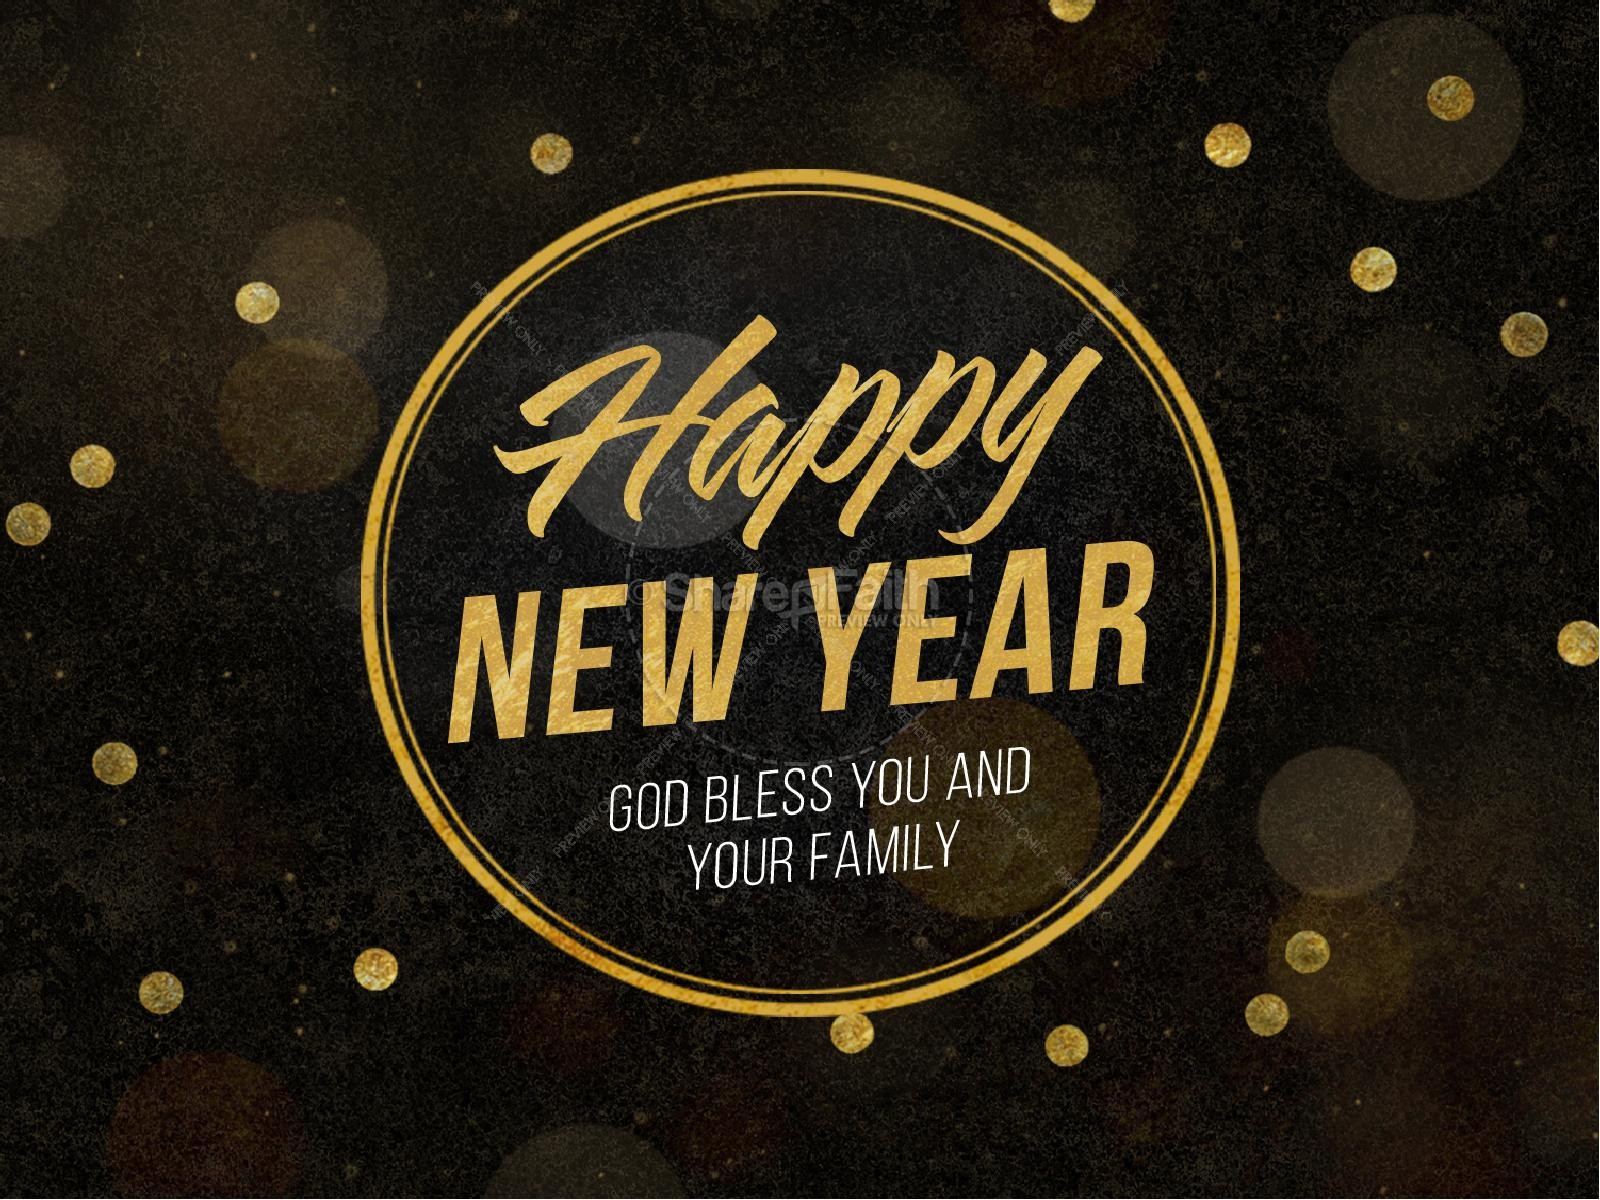 Welcome back to activities at church clipart blessings jpg royalty free Happy New Year Blessings Church PowerPoint   Church New Year ... jpg royalty free